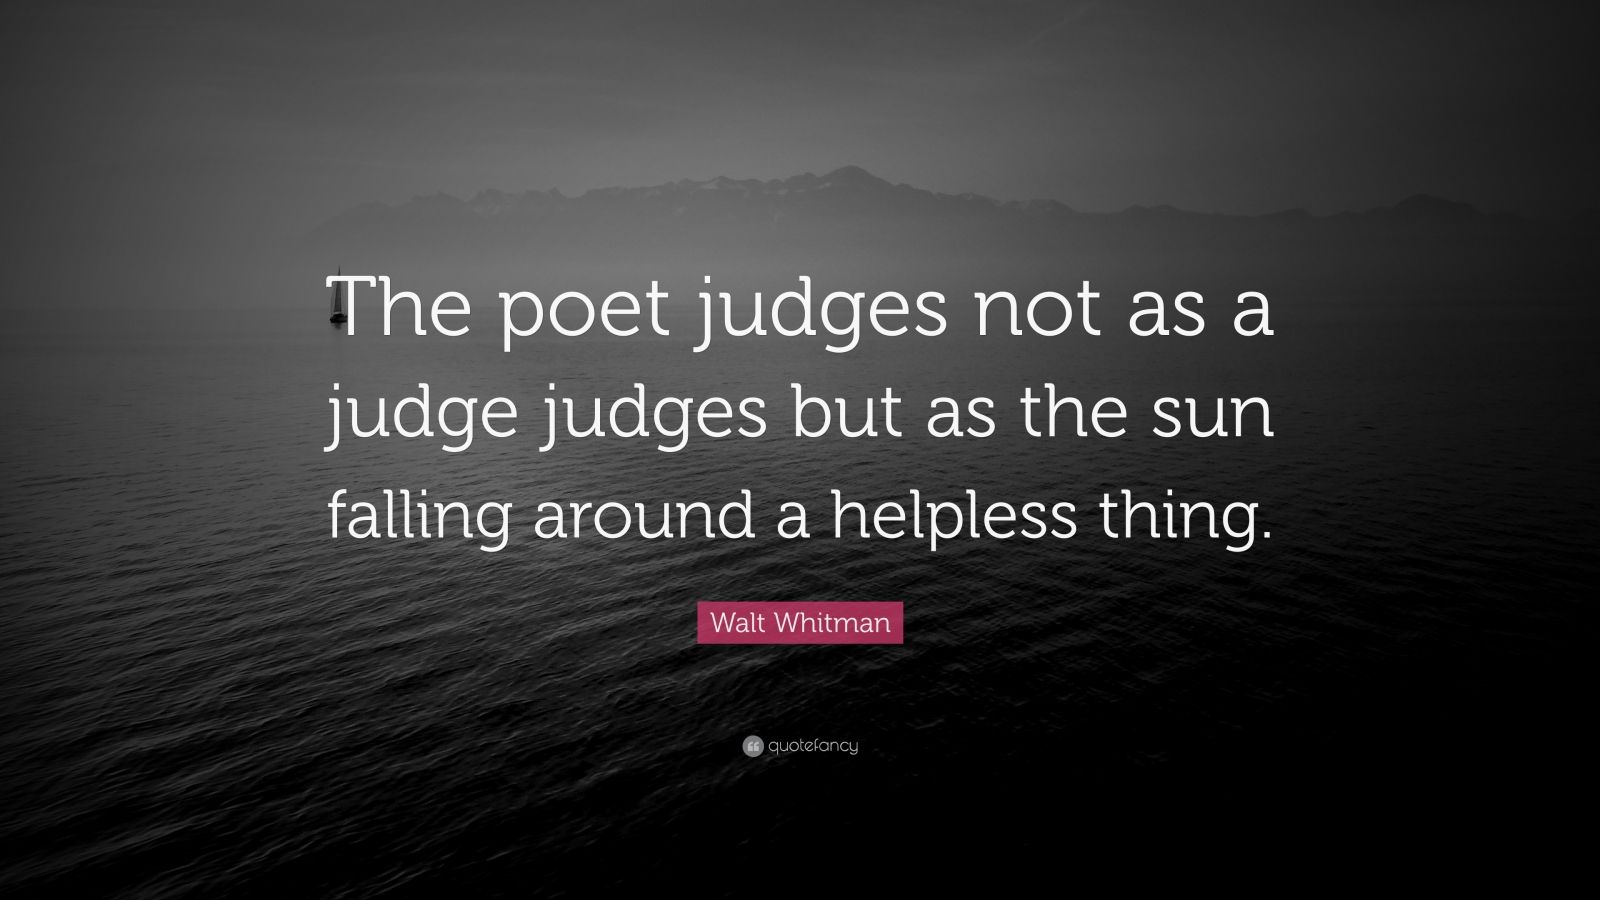 """Walt Whitman Quote: """"The poet judges not as a judge judges but as the sun falling around a helpless thing."""""""